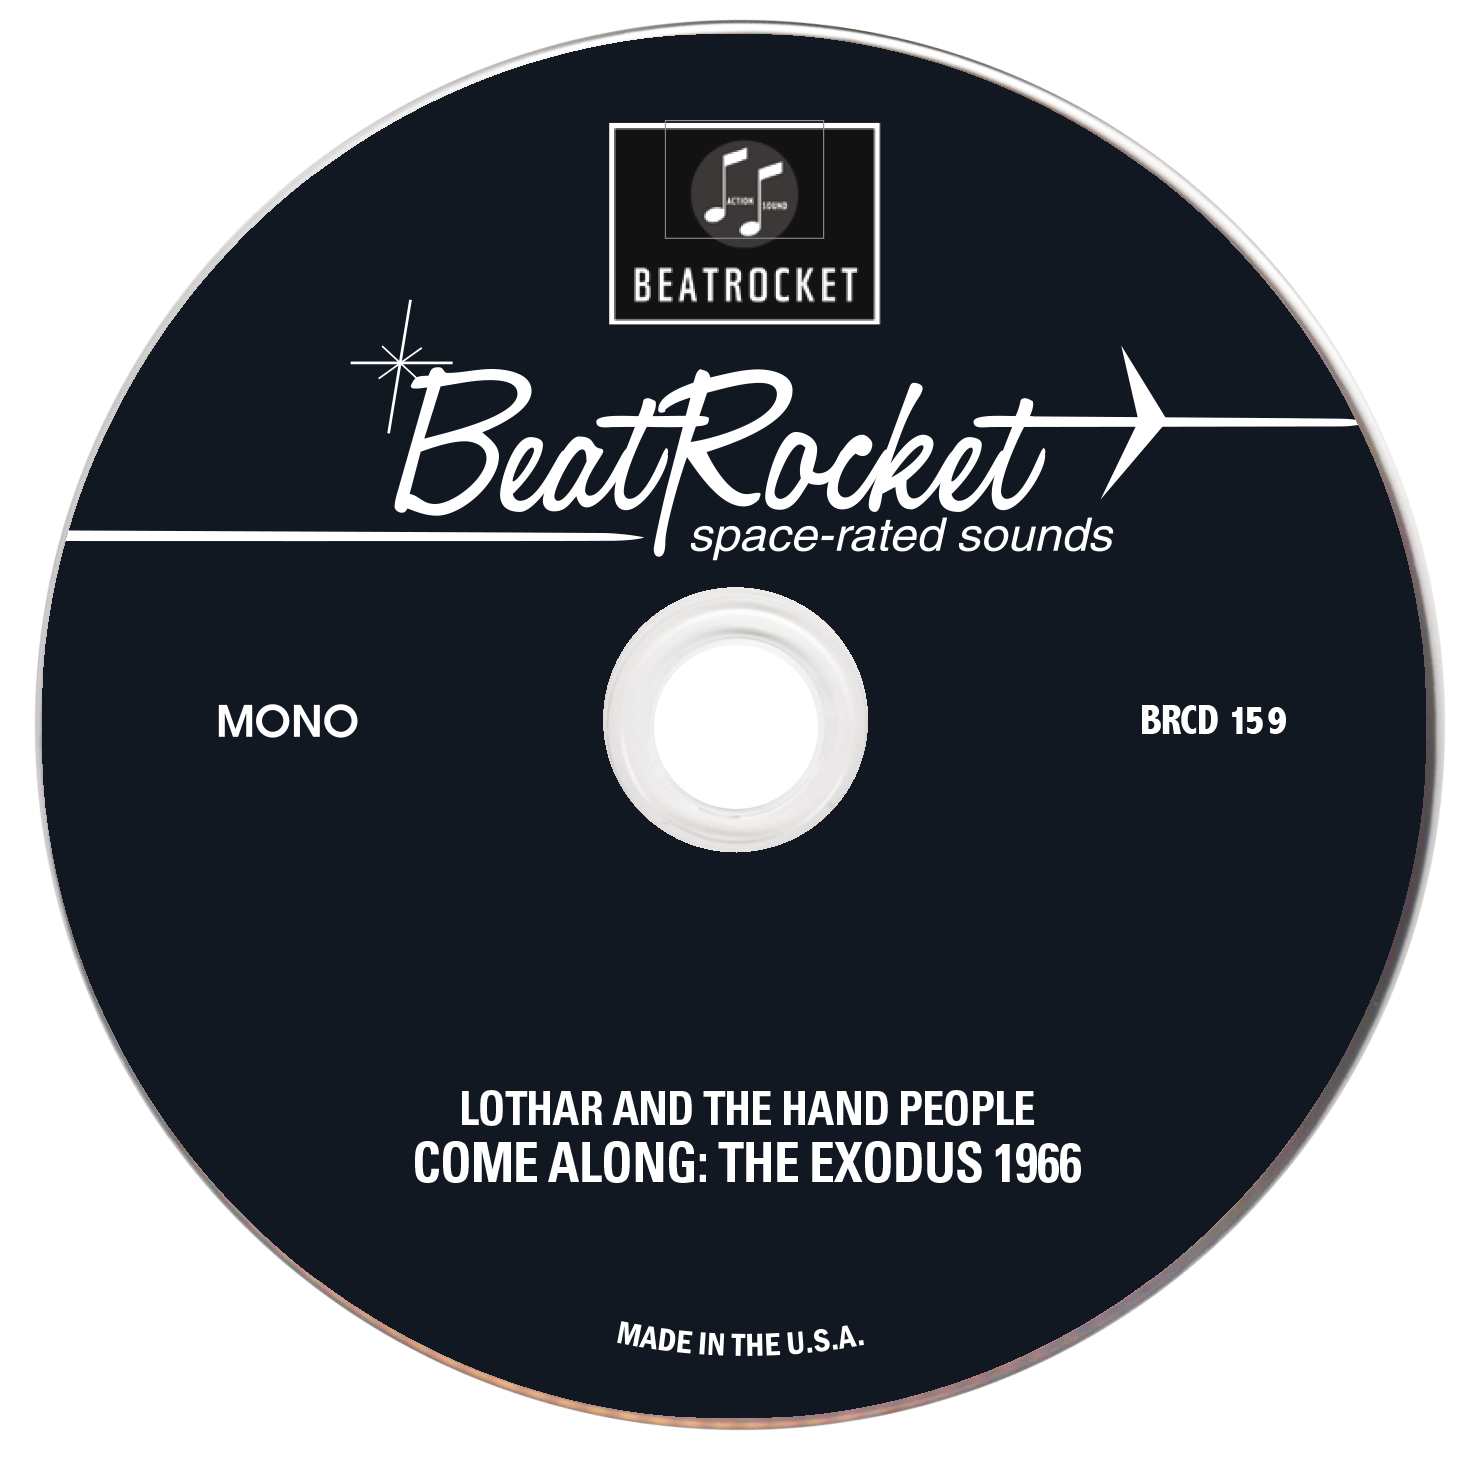 Lothar And The Hand People - Come Along: The Exodus 1966 - CD - CD-BEAT-159